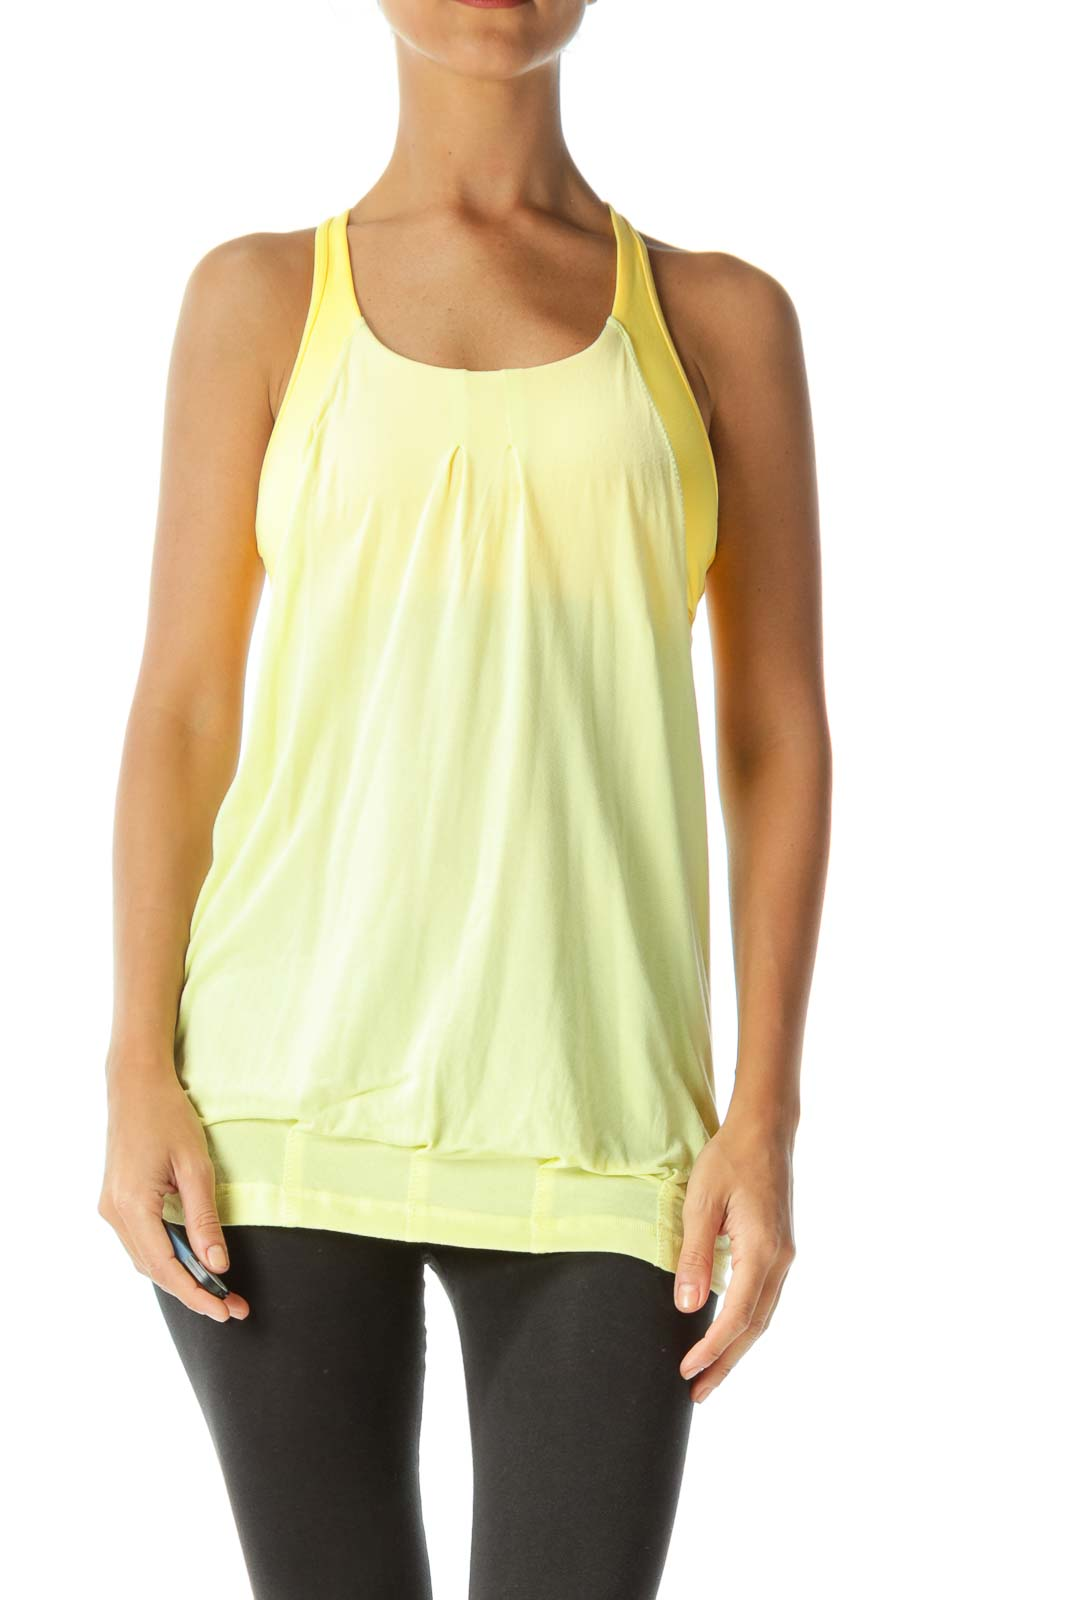 Yellow Racer-Back Cut-Out Built-in-Bra Yoga Tank